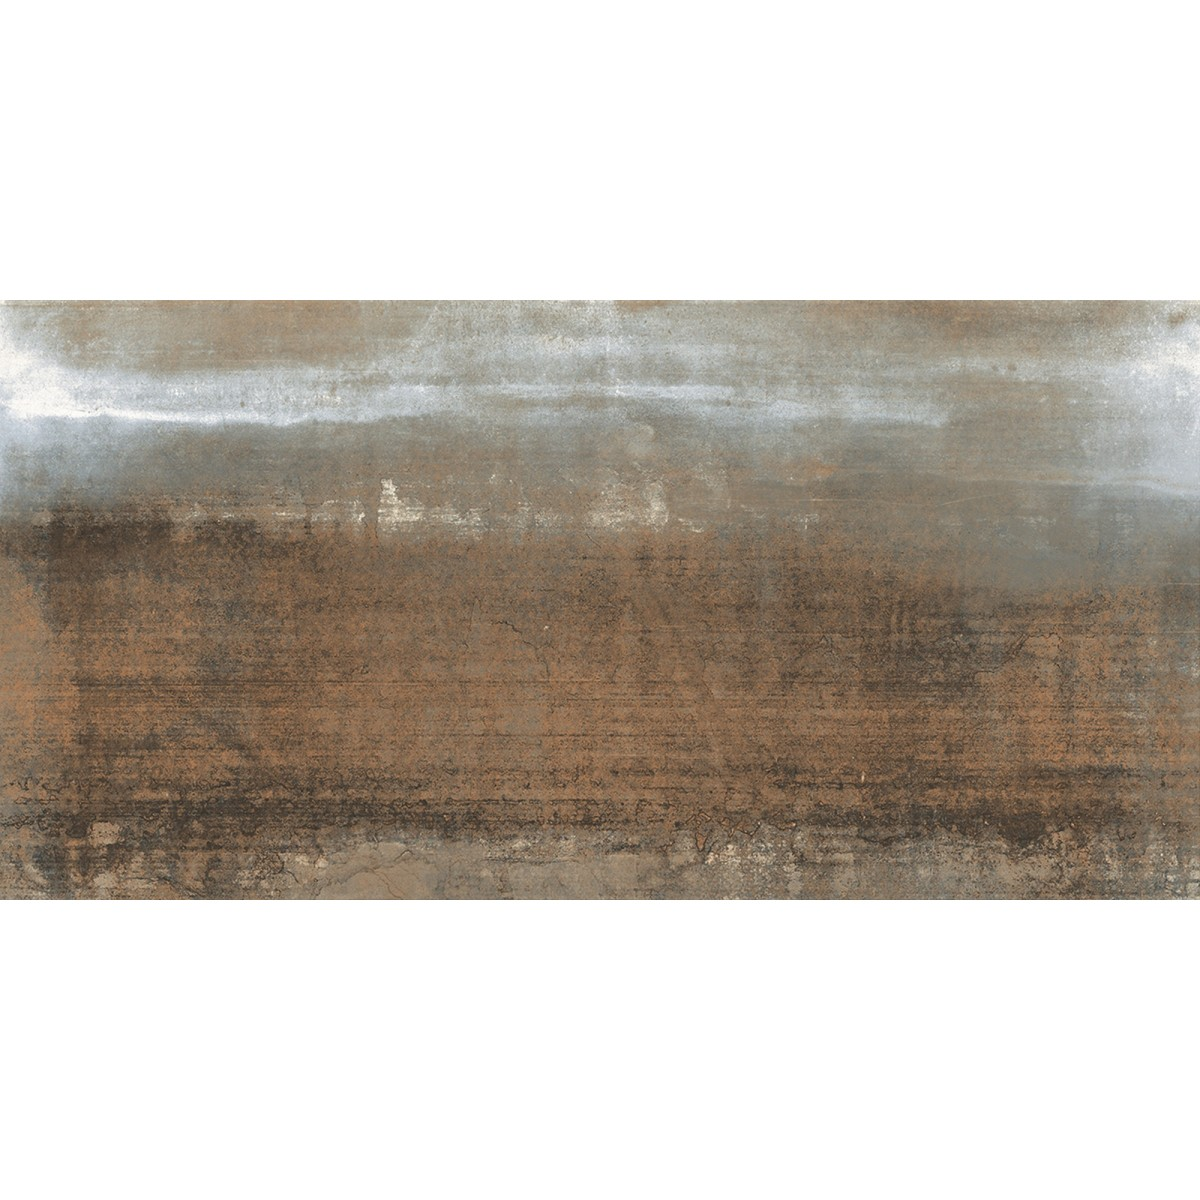 Rock Grey, Lapatto, 1200x600x11 mm